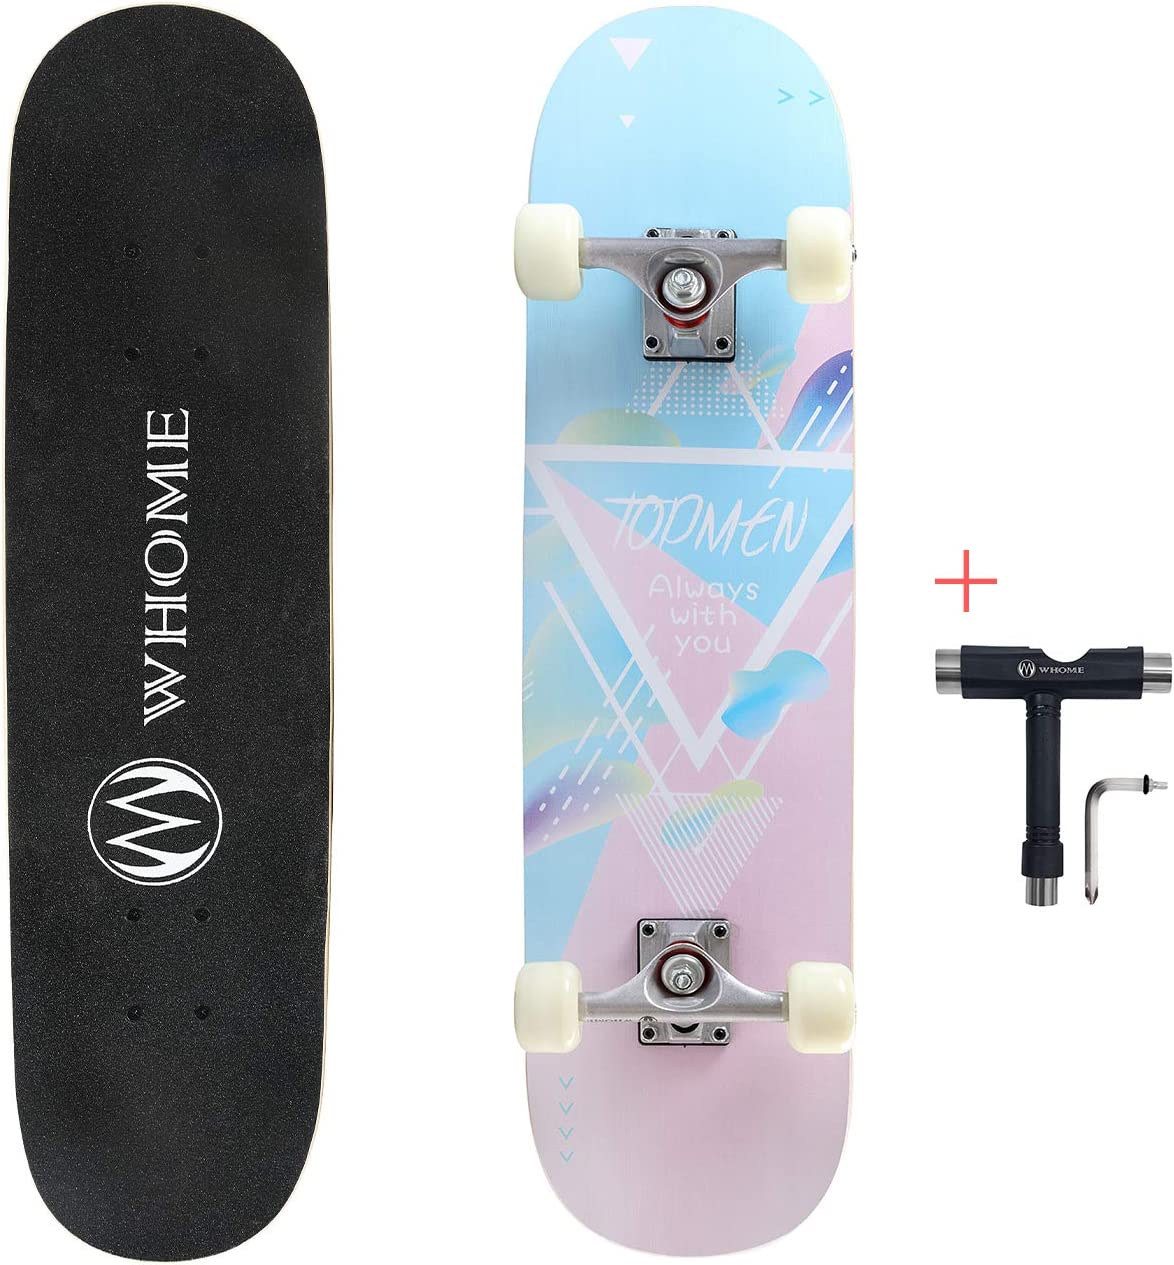 WHOME Pro Skateboard Complete for Adult Youth Kid and Beginner 31 Double Kick Concave Street Skateboard 8 Layer Alpine Hard Rock Maple Deck ABEC-9 Bearings Includes T-Tool